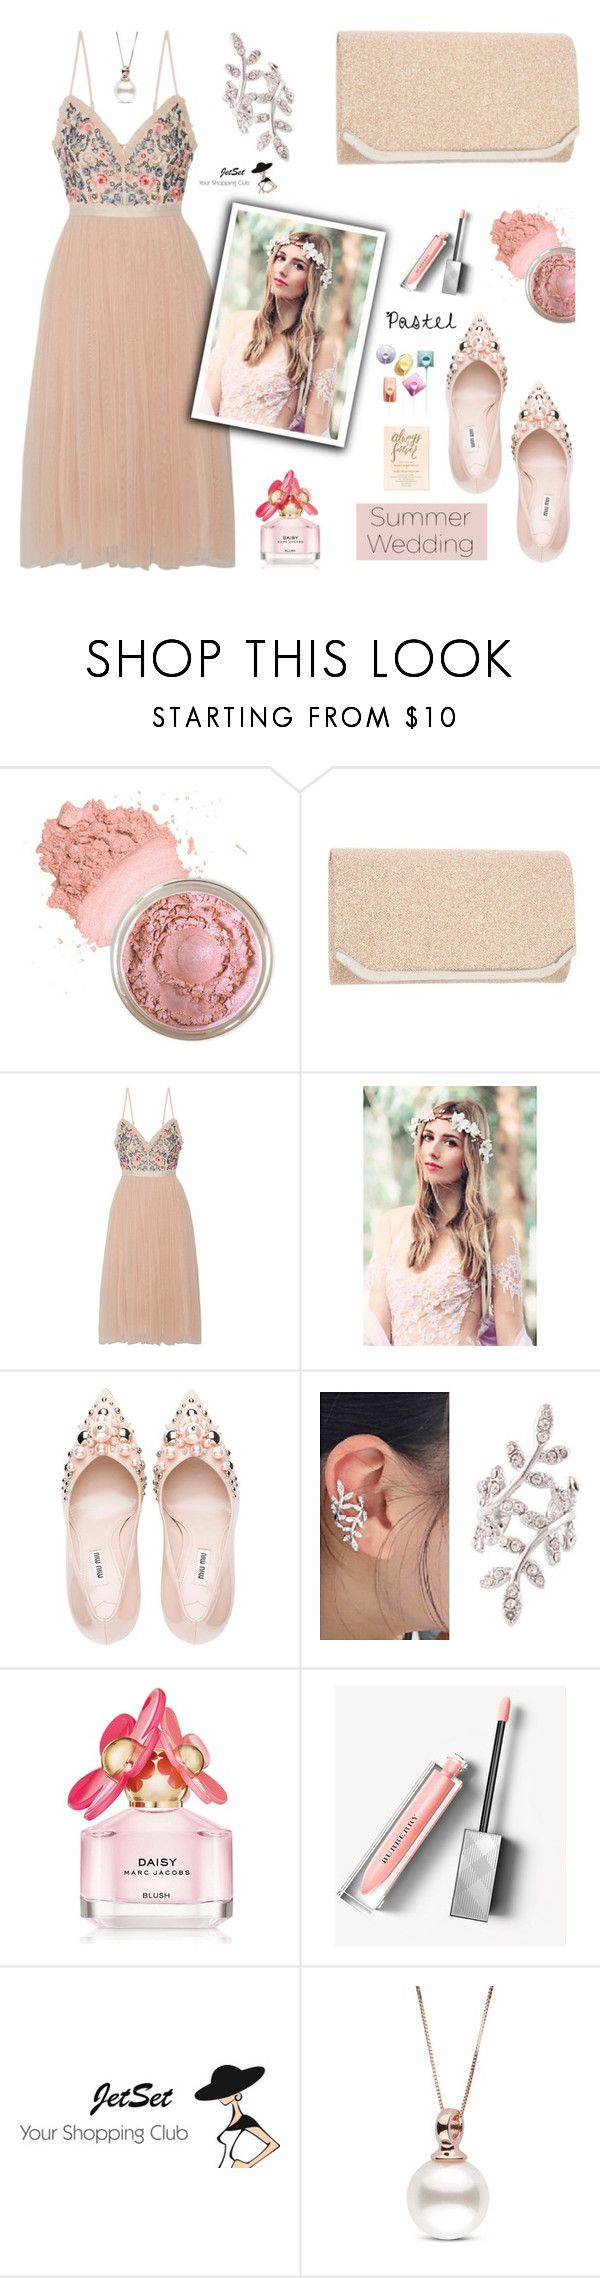 """Say I Do: Summer Weddings, JetSet!"" by samra-bv ❤ liked on Polyvore featuring Needle & Thread, Miu Miu, Marc Jacobs, Burberry, Summer, bag, summerwedding, earrings and summervibes"